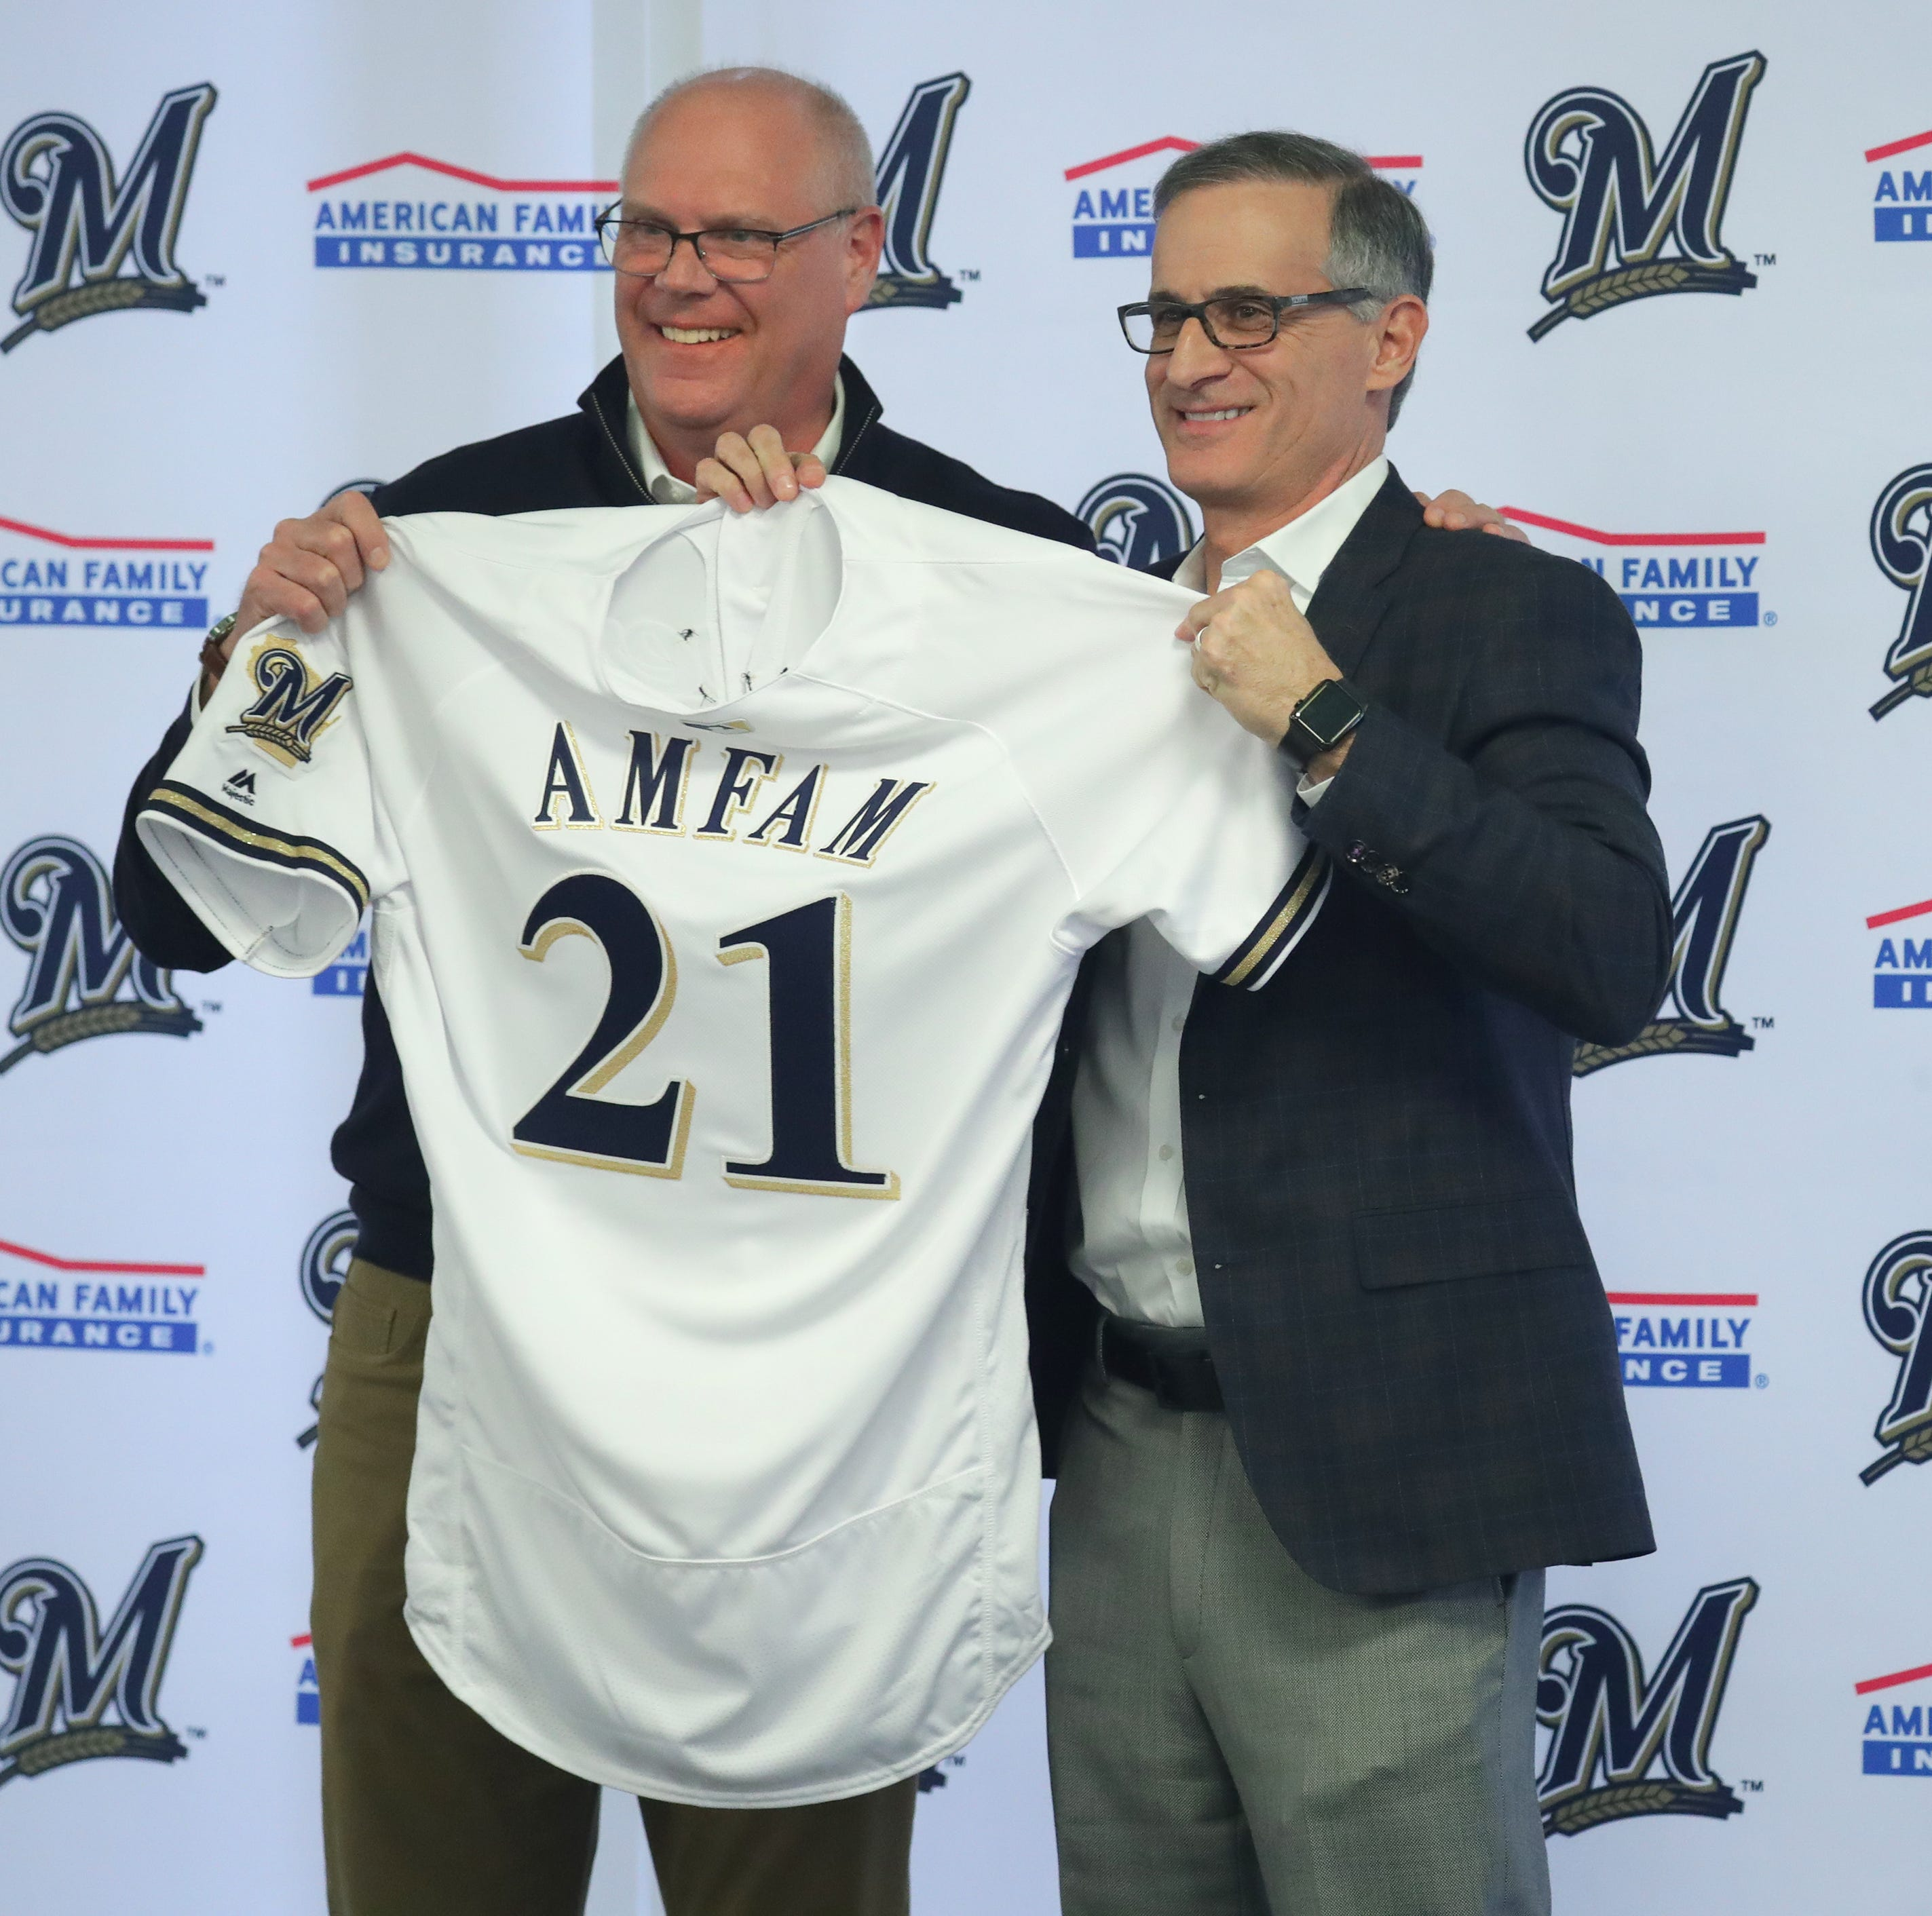 American Family Insurance to replace Miller Brewing Co. as naming rights sponsor for Brewers stadium